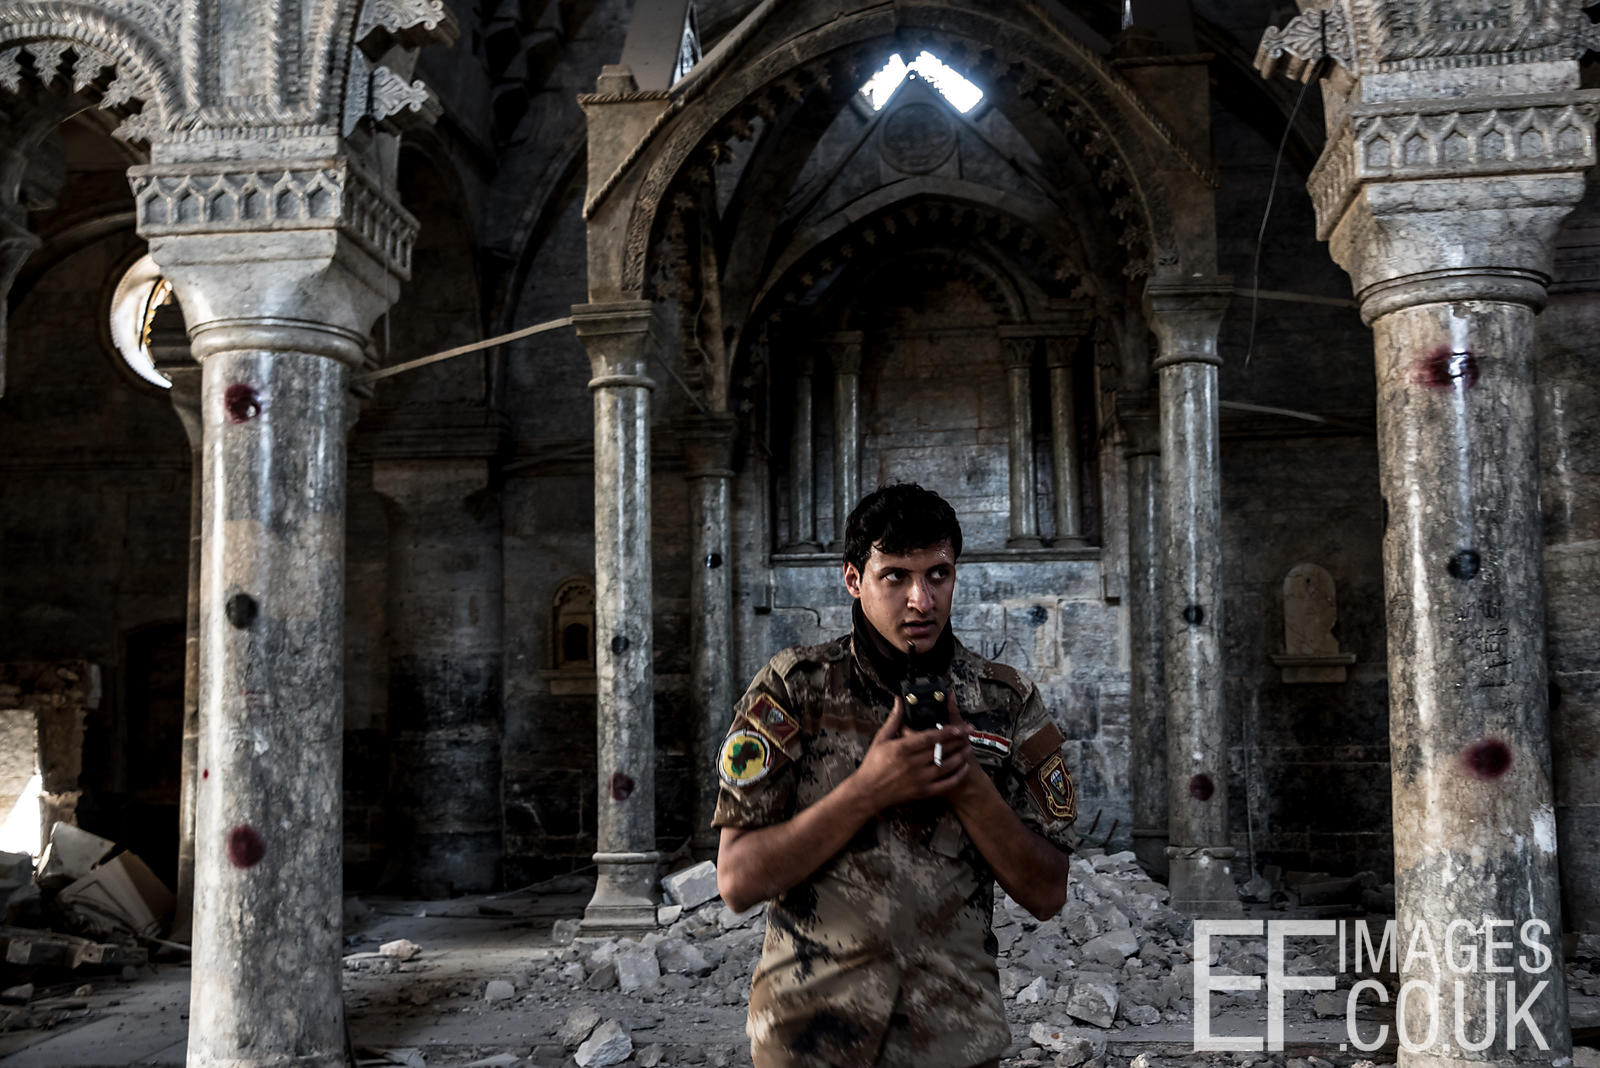 An Iraqi Special Forces Soldier talks on his radio inside the Church of St Thomas, used as an ISIS base until its liberation. Old City of West Mosul, Iraq. 24 June 2017